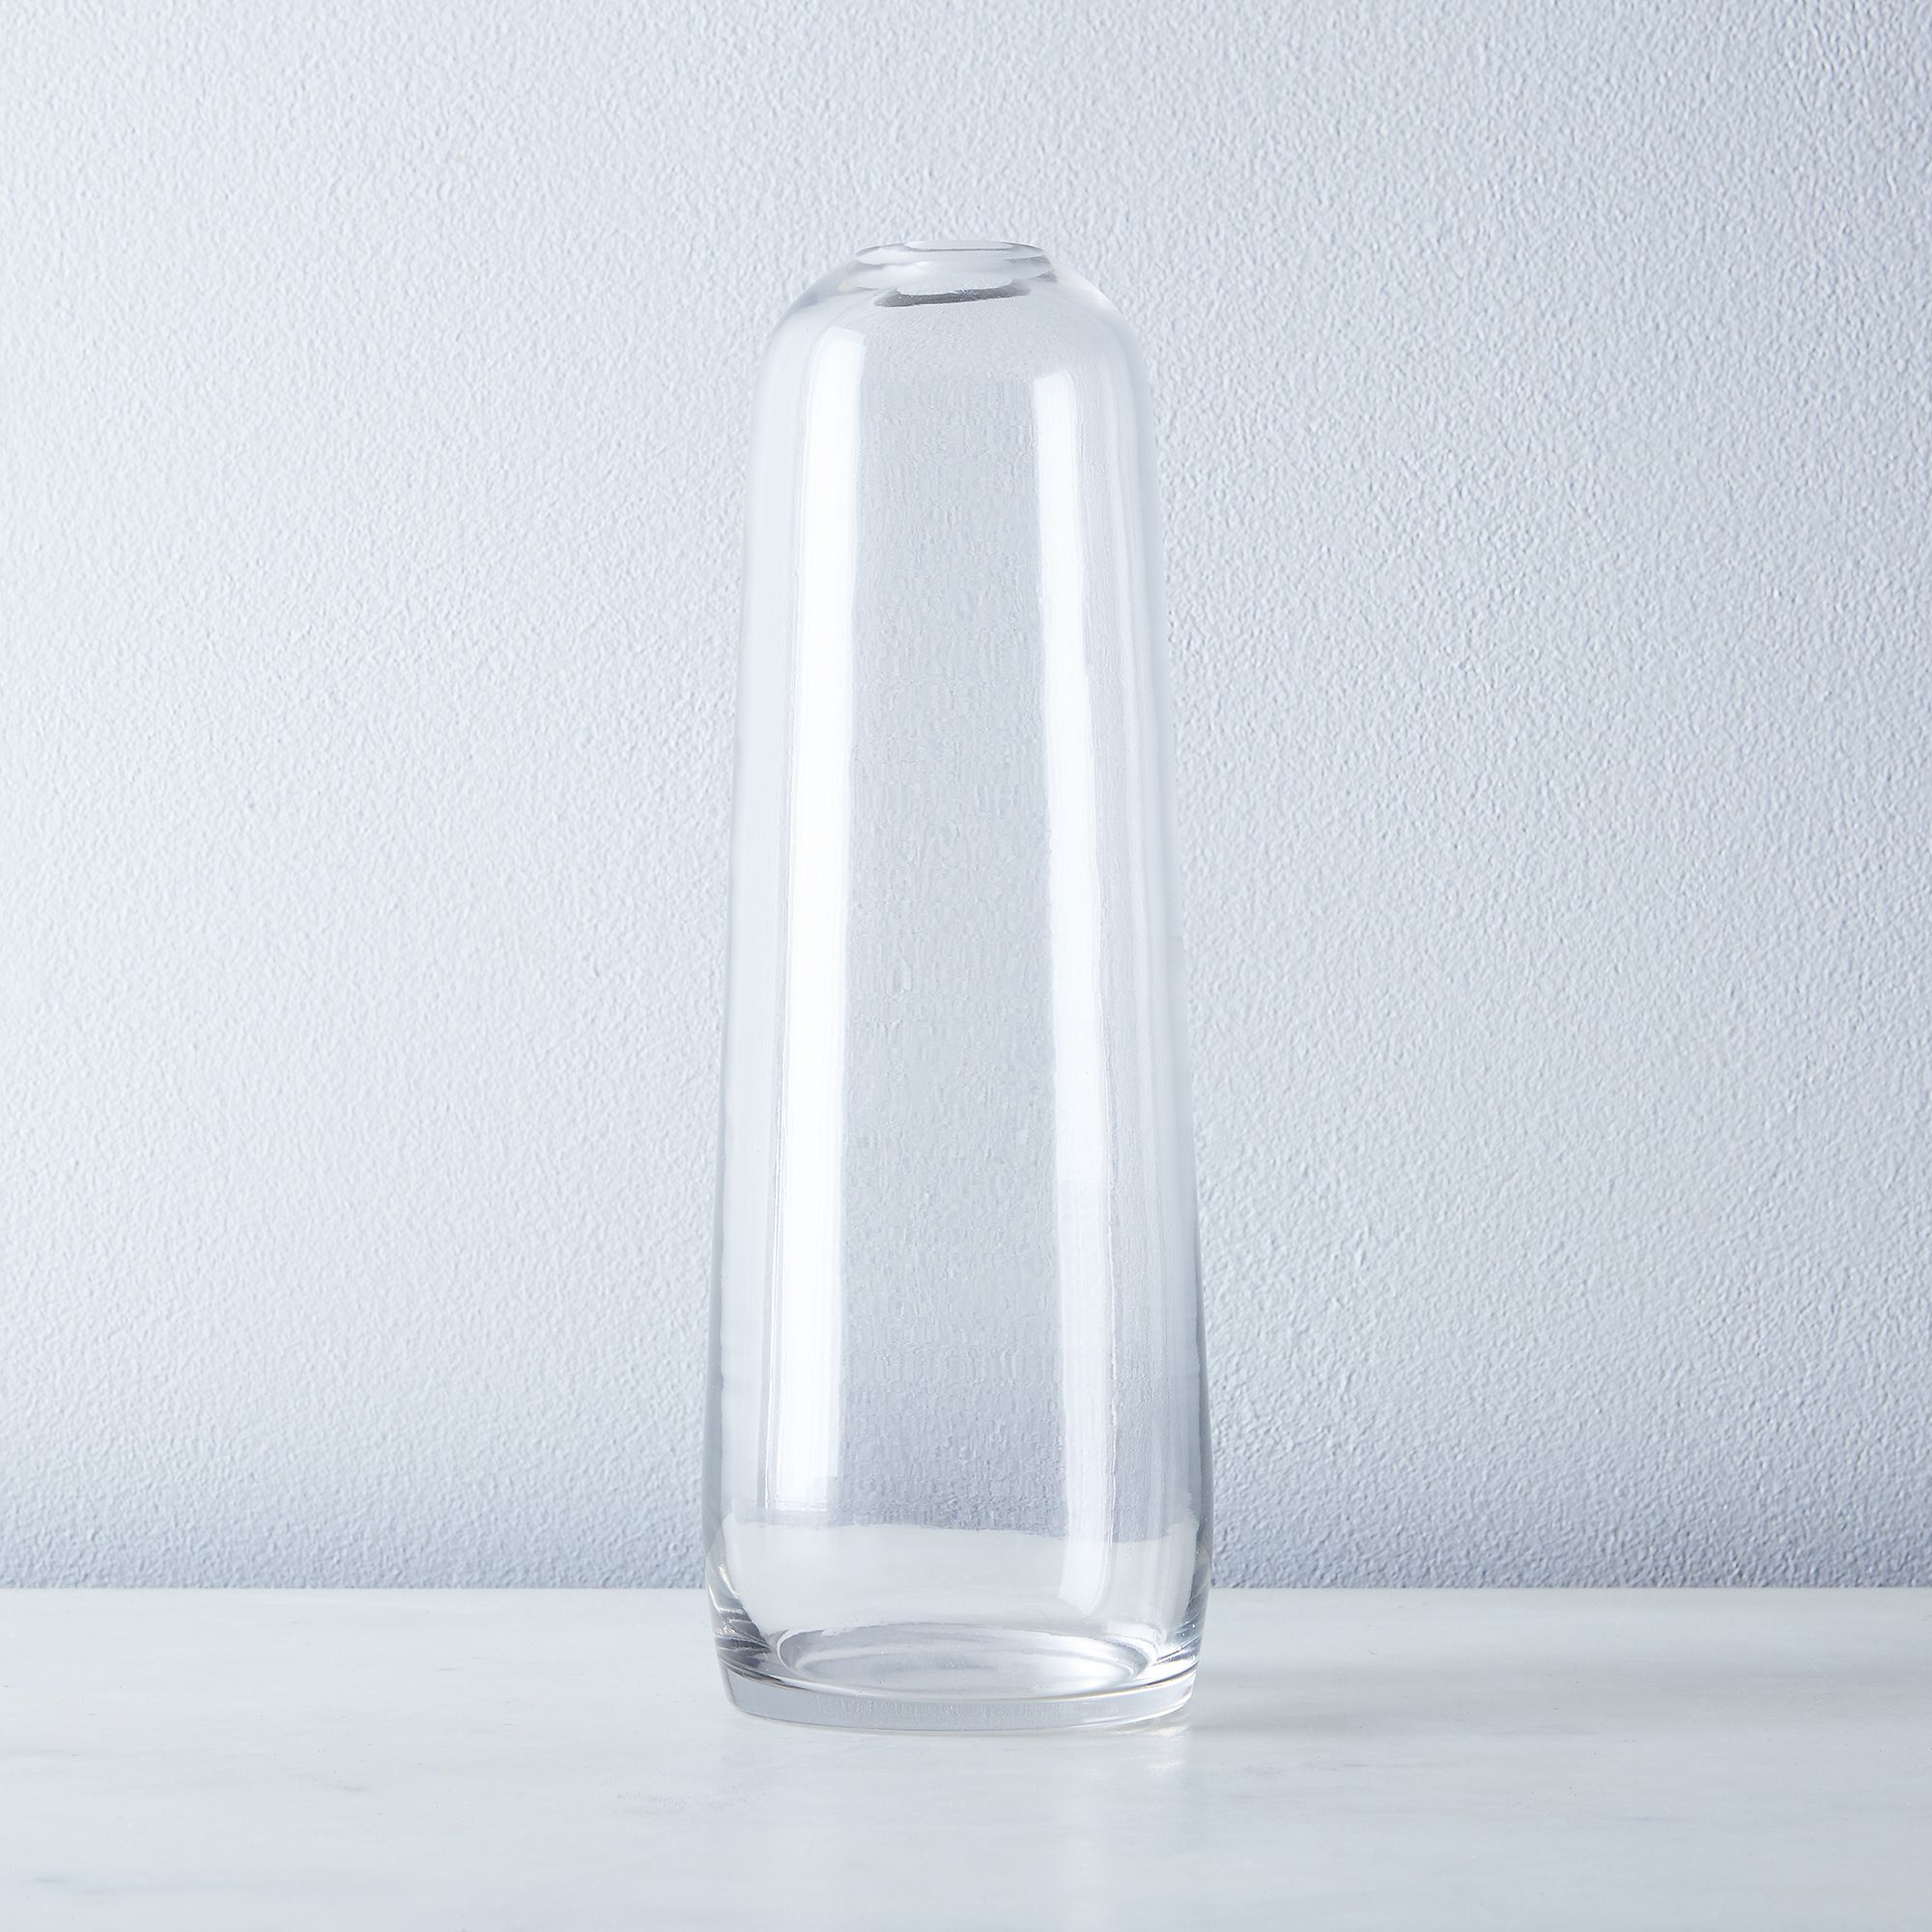 F1ee7dff d3d6 4a44 924a 370a730420fc  2017 0703 hawkins new york tall glass vases clear large silo rocky luten 007